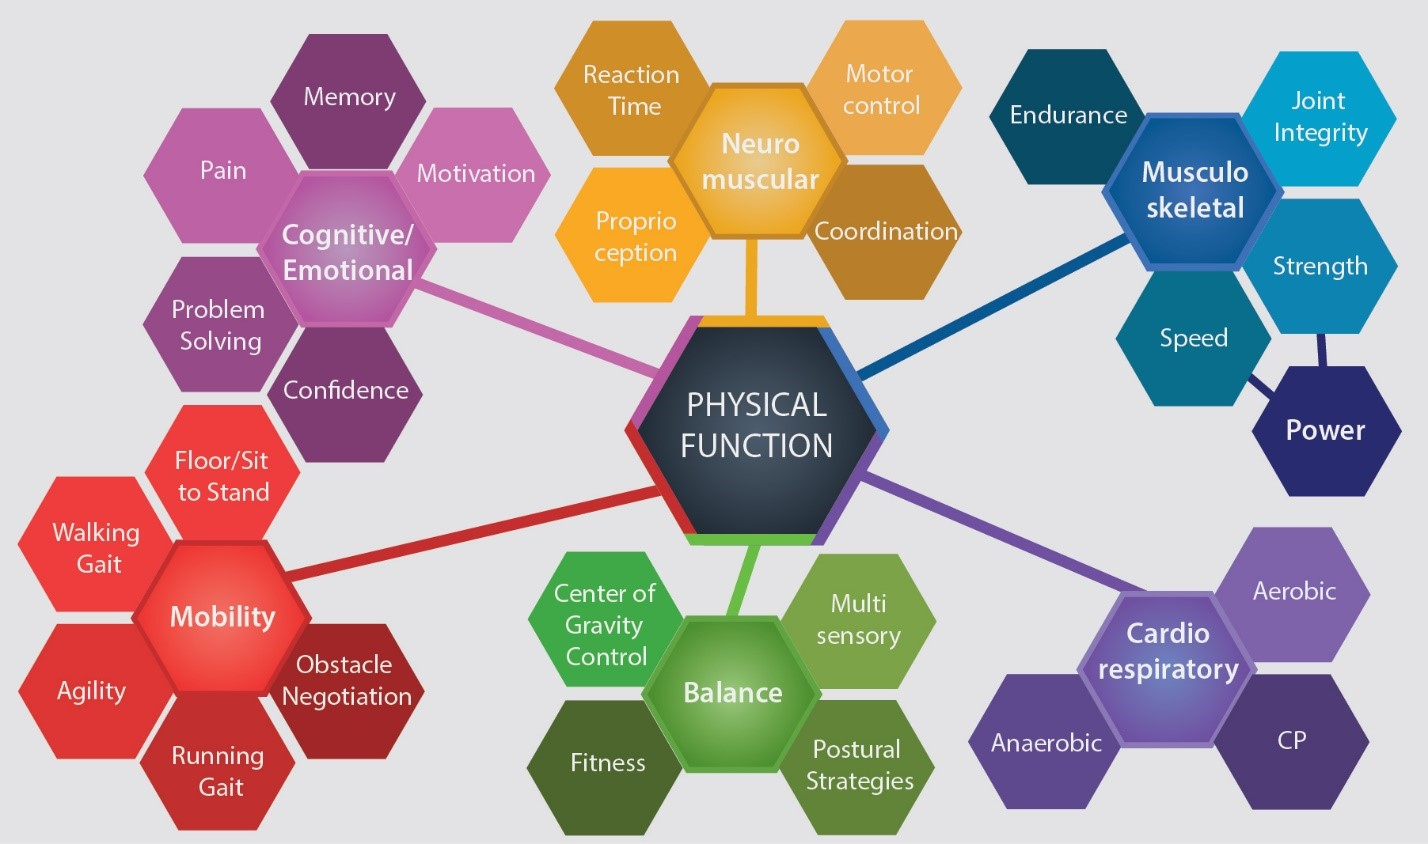 Functional Aging Training Model Copyright Functional Aging Institute 2018. Used with permission.  Note: CP = creatine phosphate system